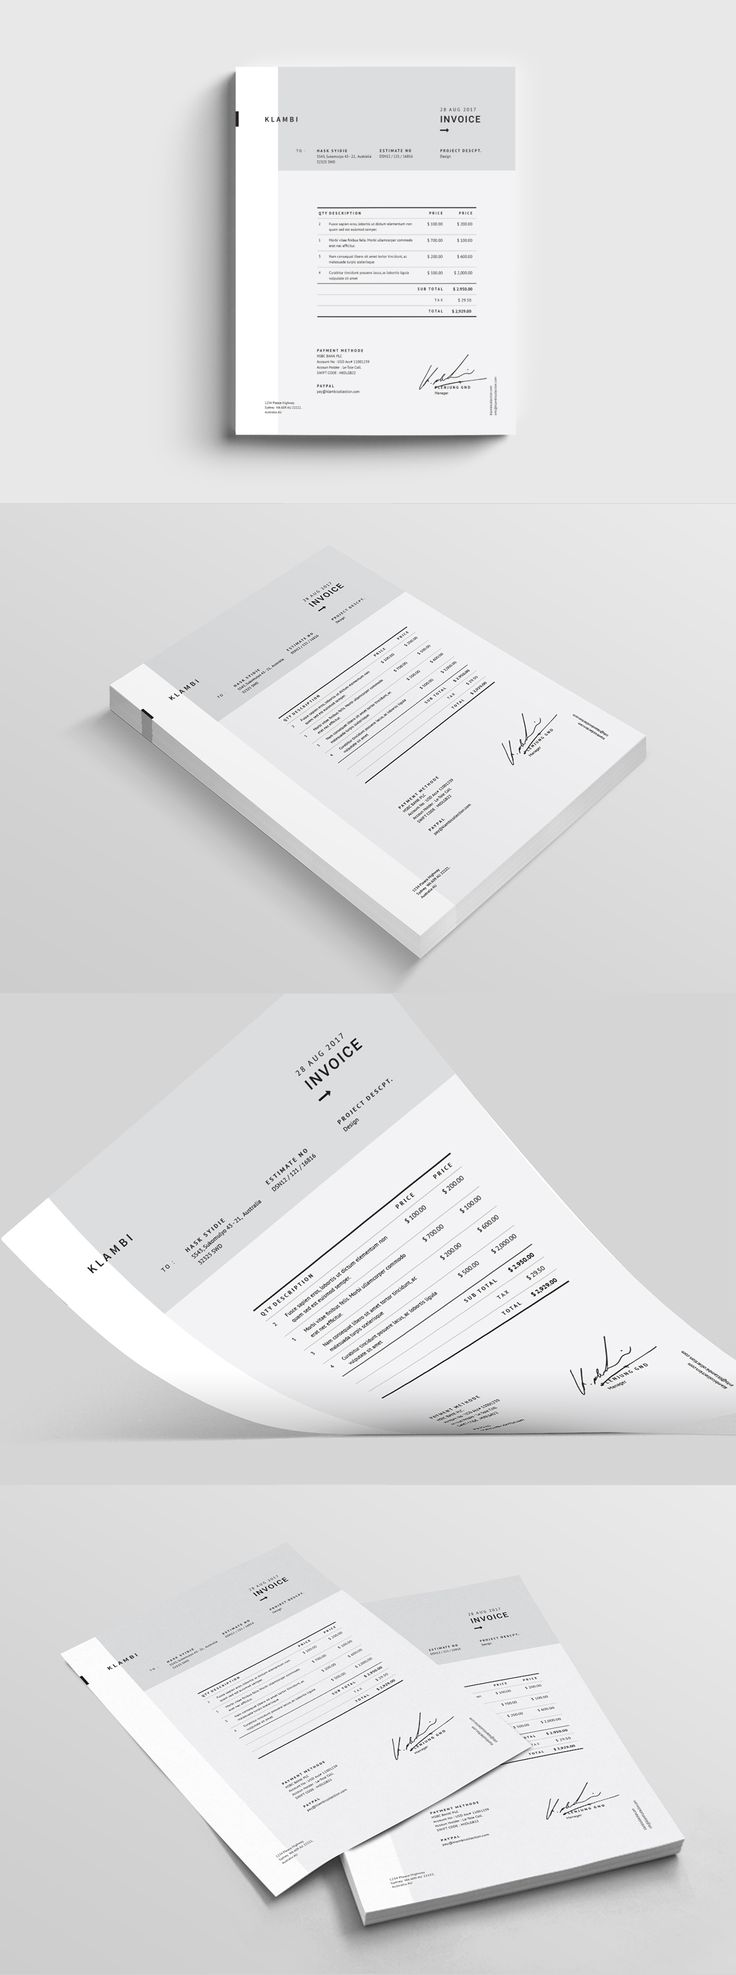 best ideas about invoice template invoice design fashion invoice template indesign indd